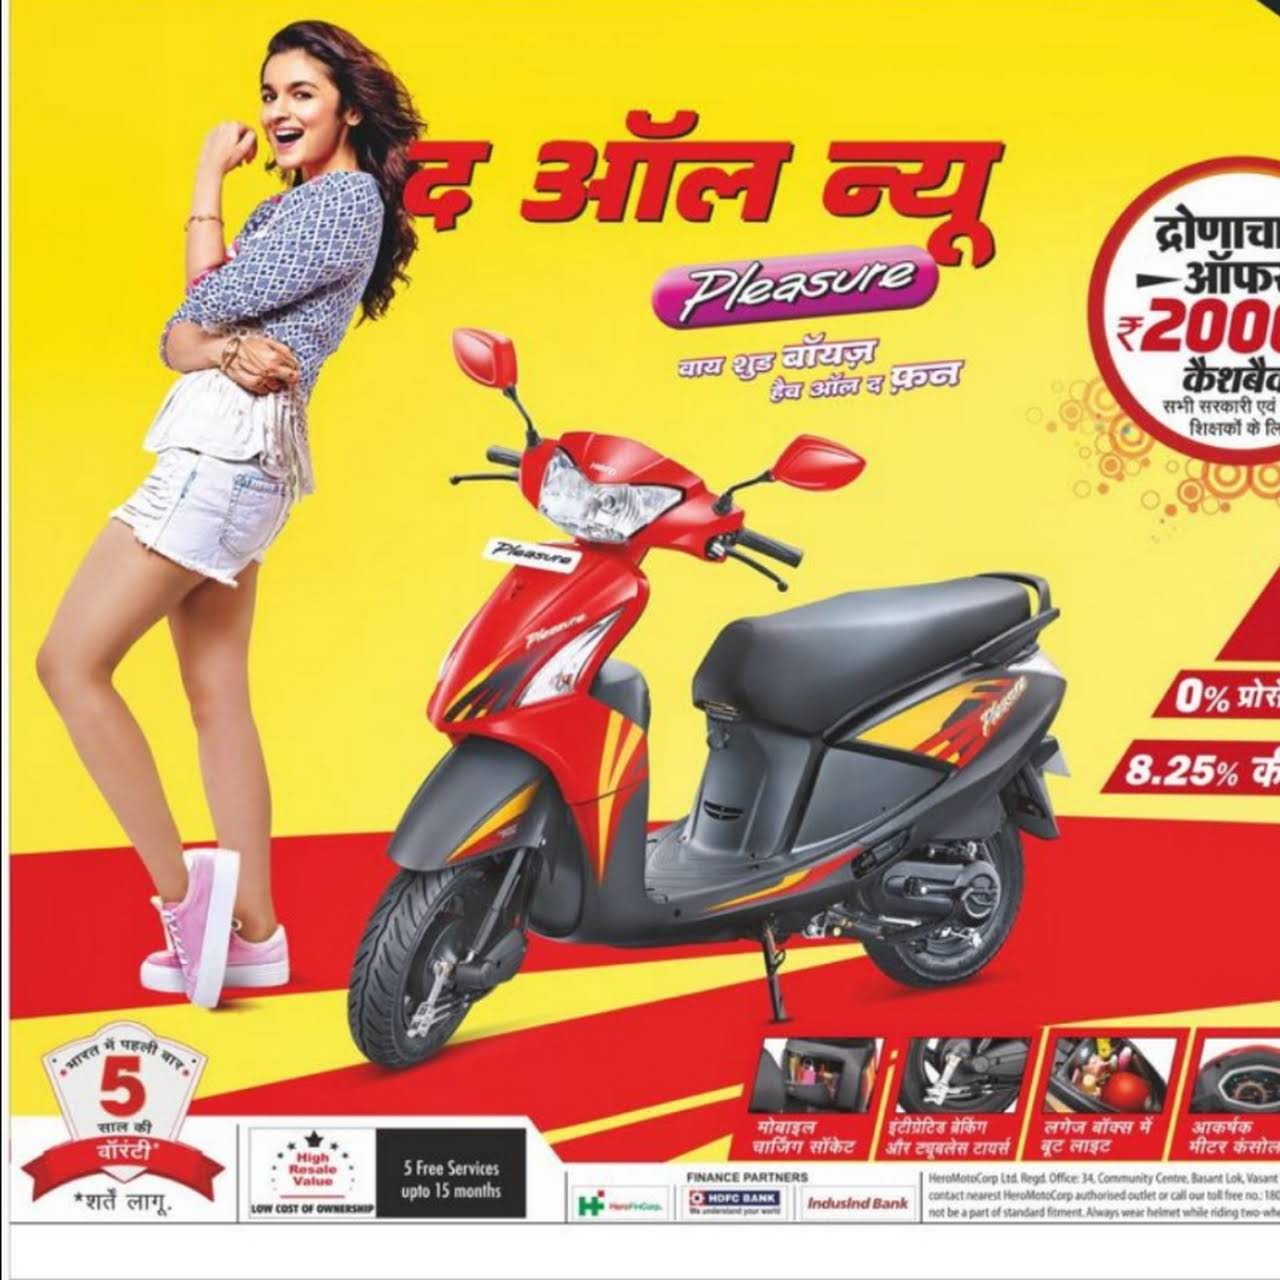 Hero MotoCorp, Unnao Hero P D  Nagar - Scooter and